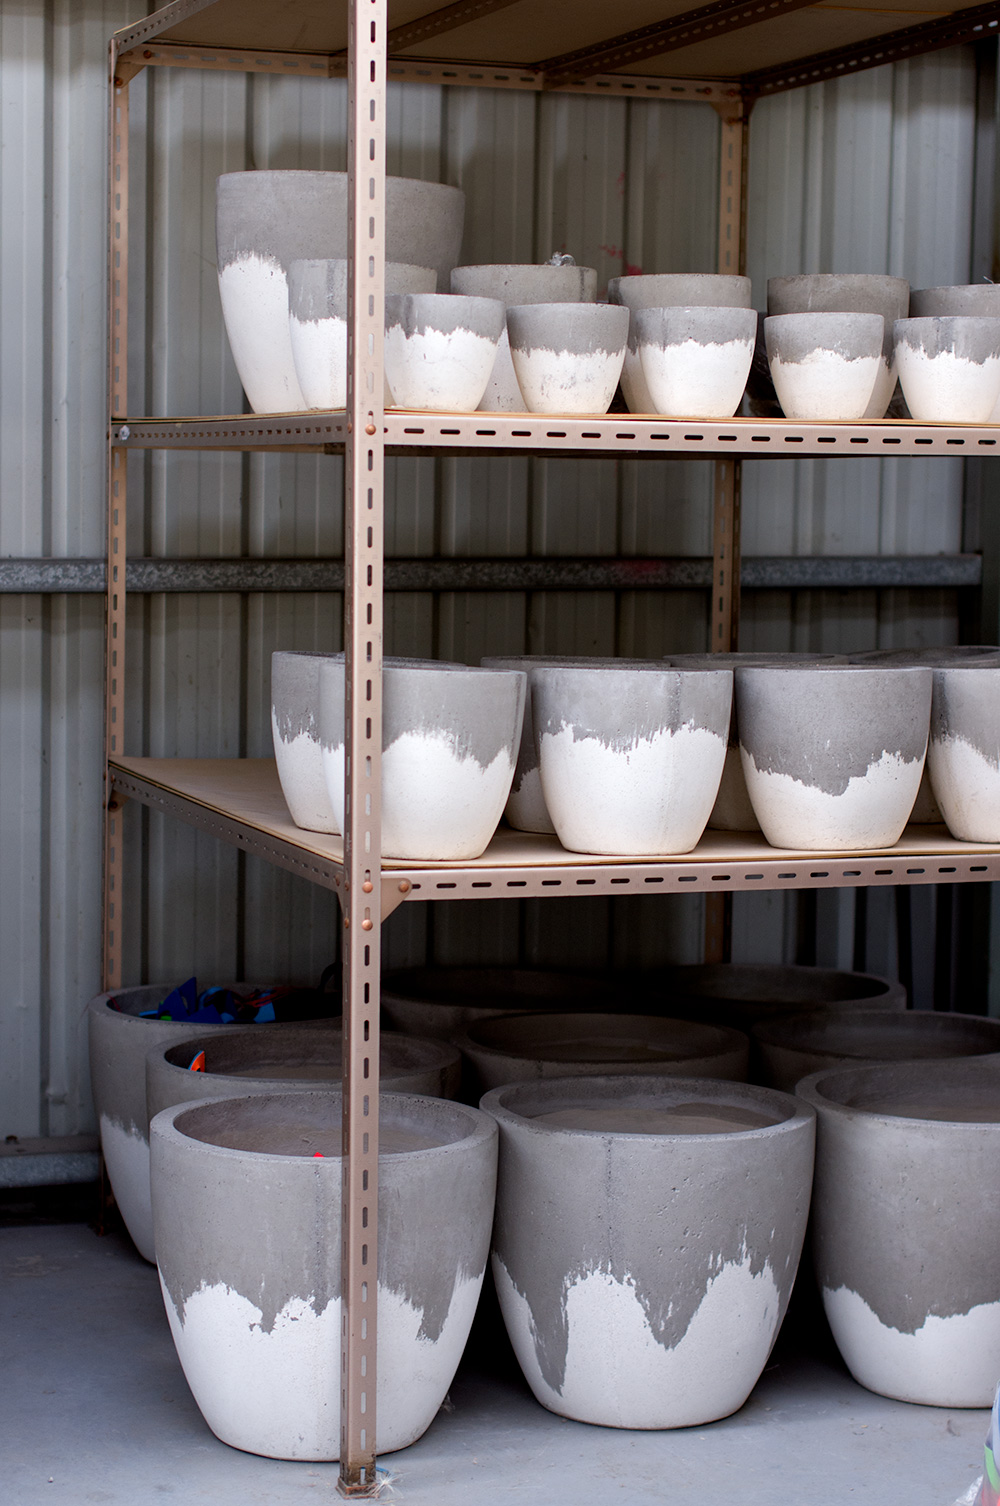 White Wash planters all lined up and in size order. Photo by Susan Fitzgerald.